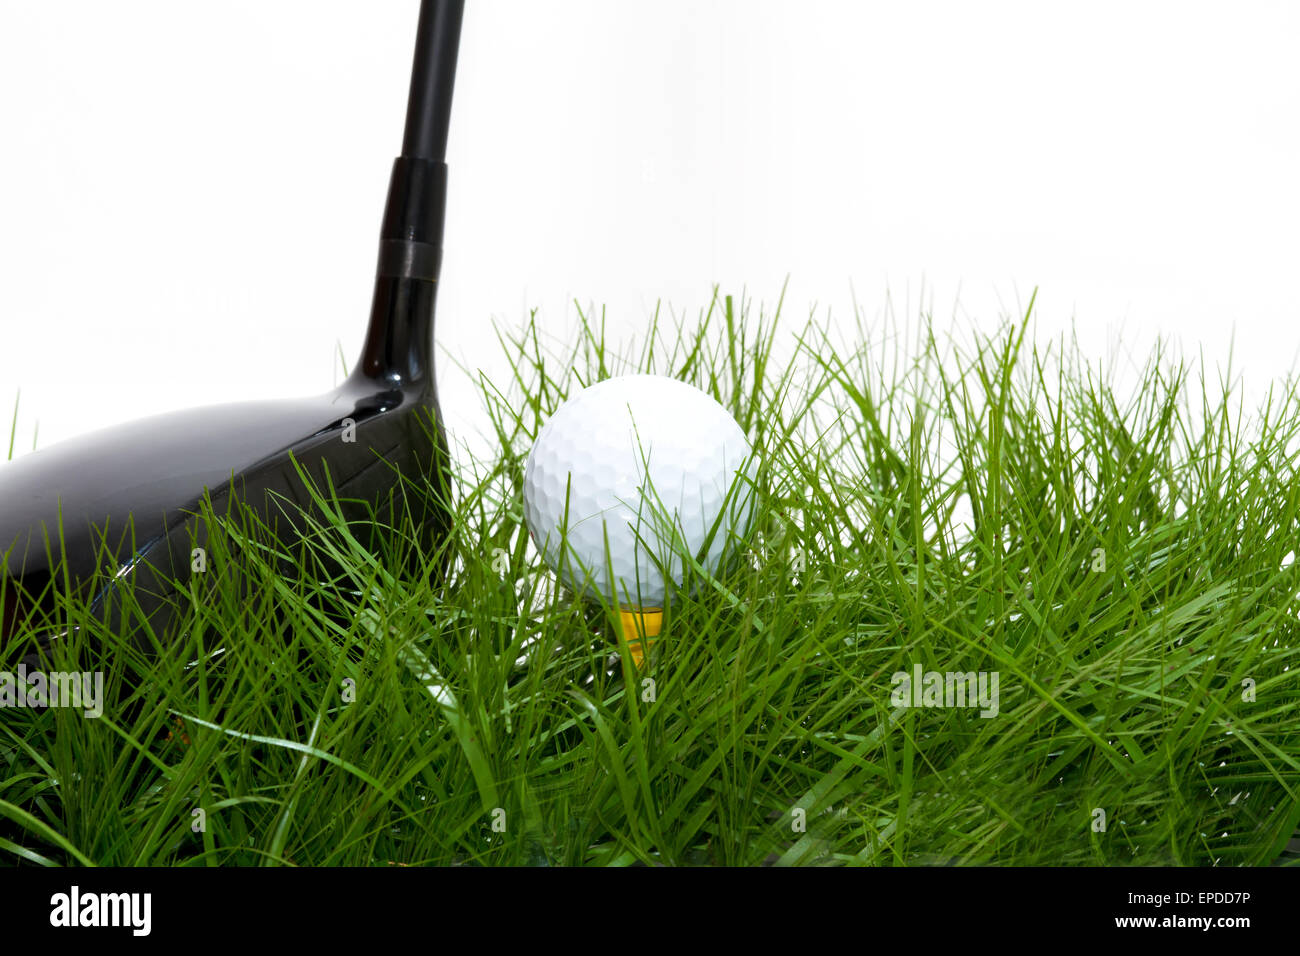 golf ball in the rough - Stock Image